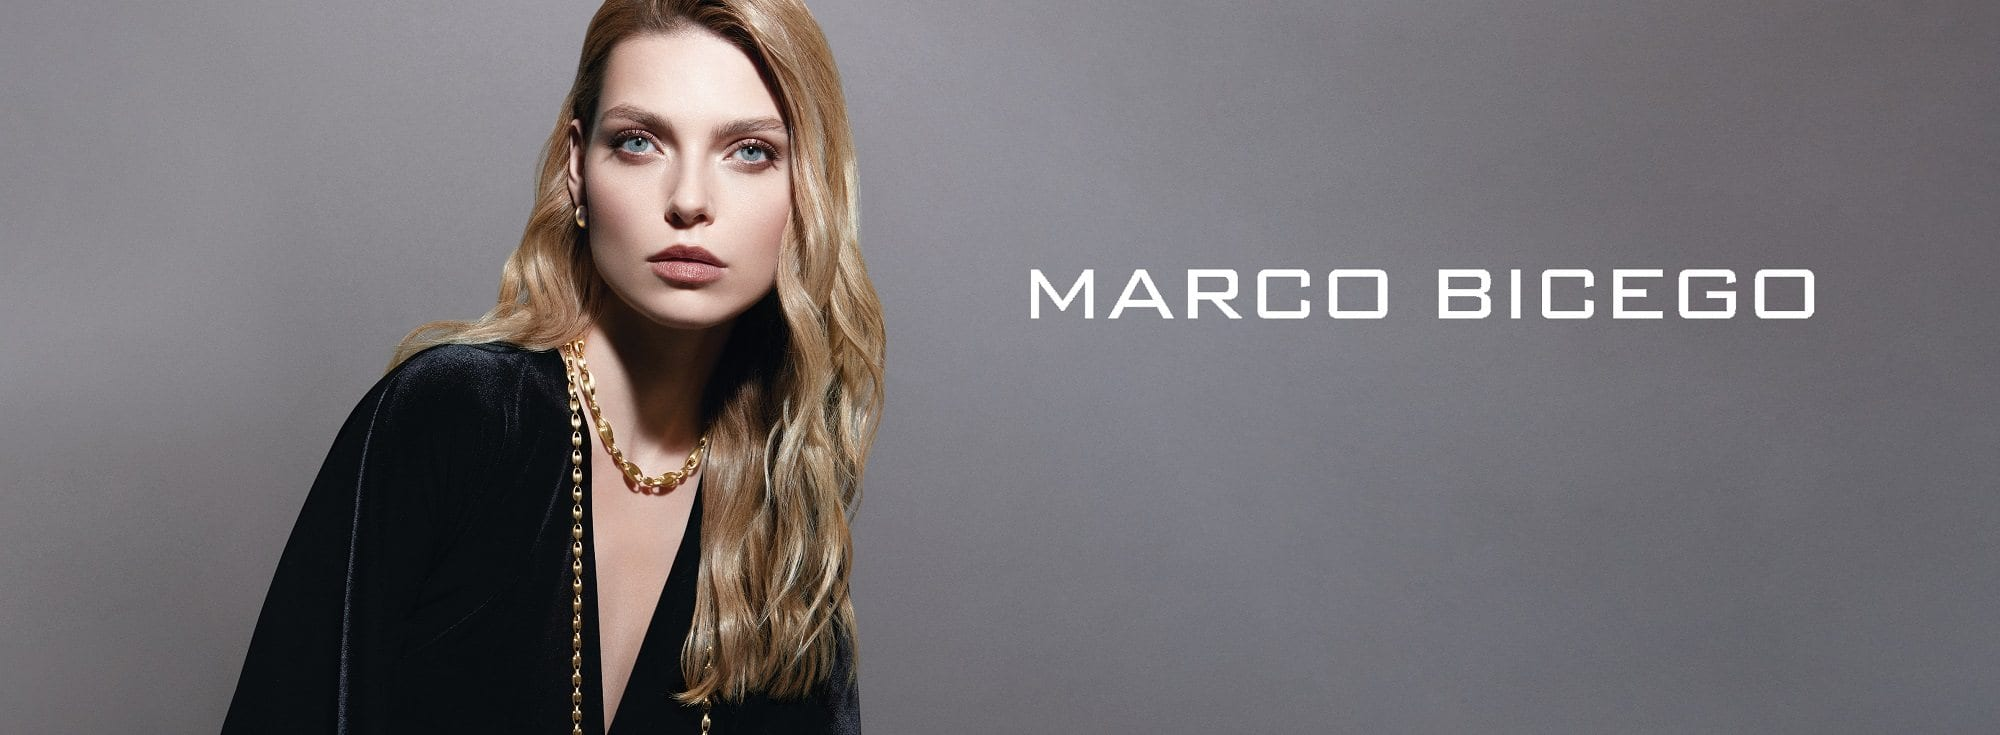 Marco Bicego at Reis-Nichols Jewelers. Shop in store for full collection.